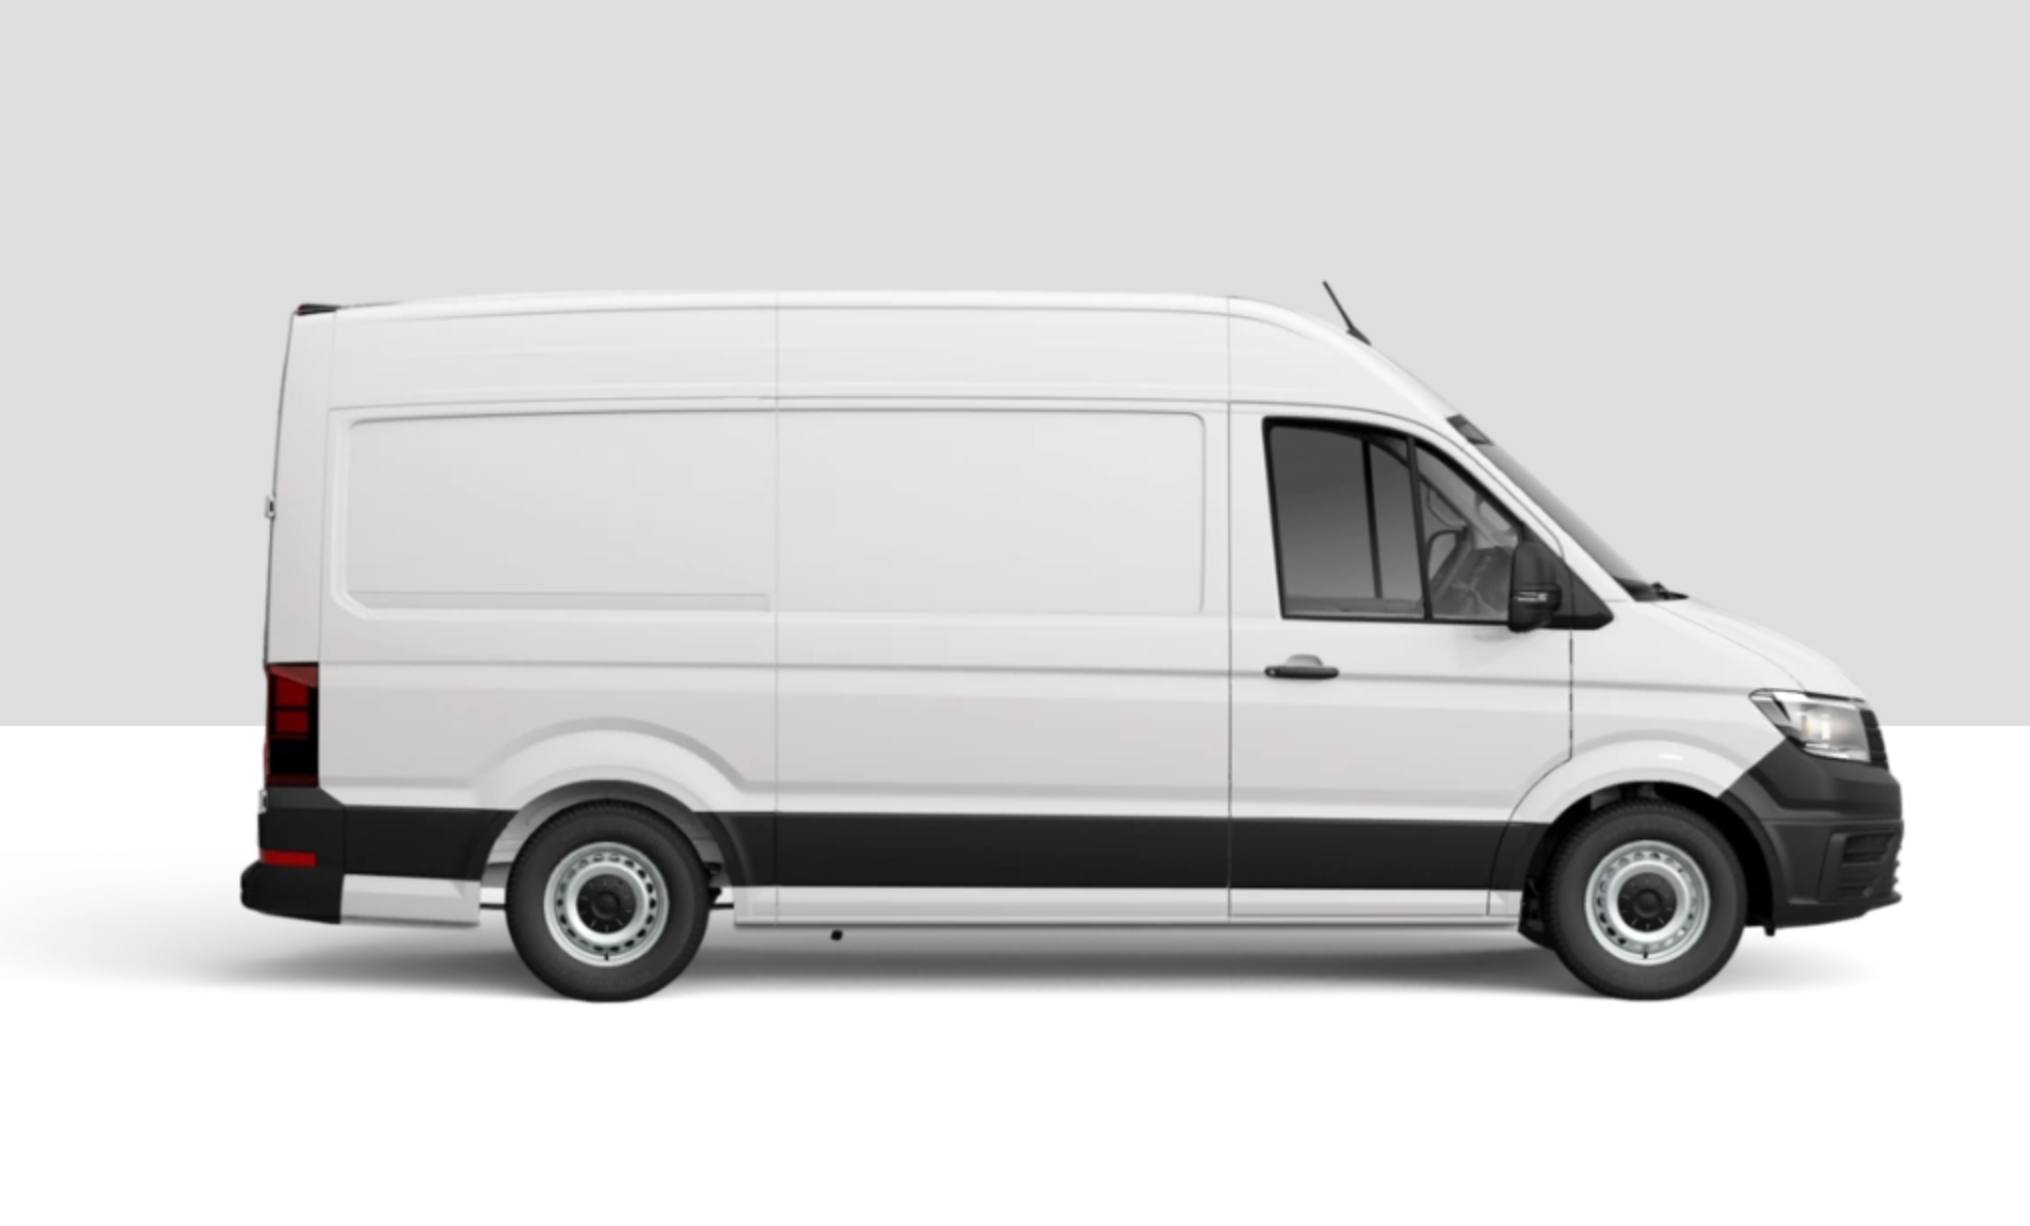 Large Van Kits (VW Crafter, Mercedes Sprinter, Peugeot Boxer, etc)